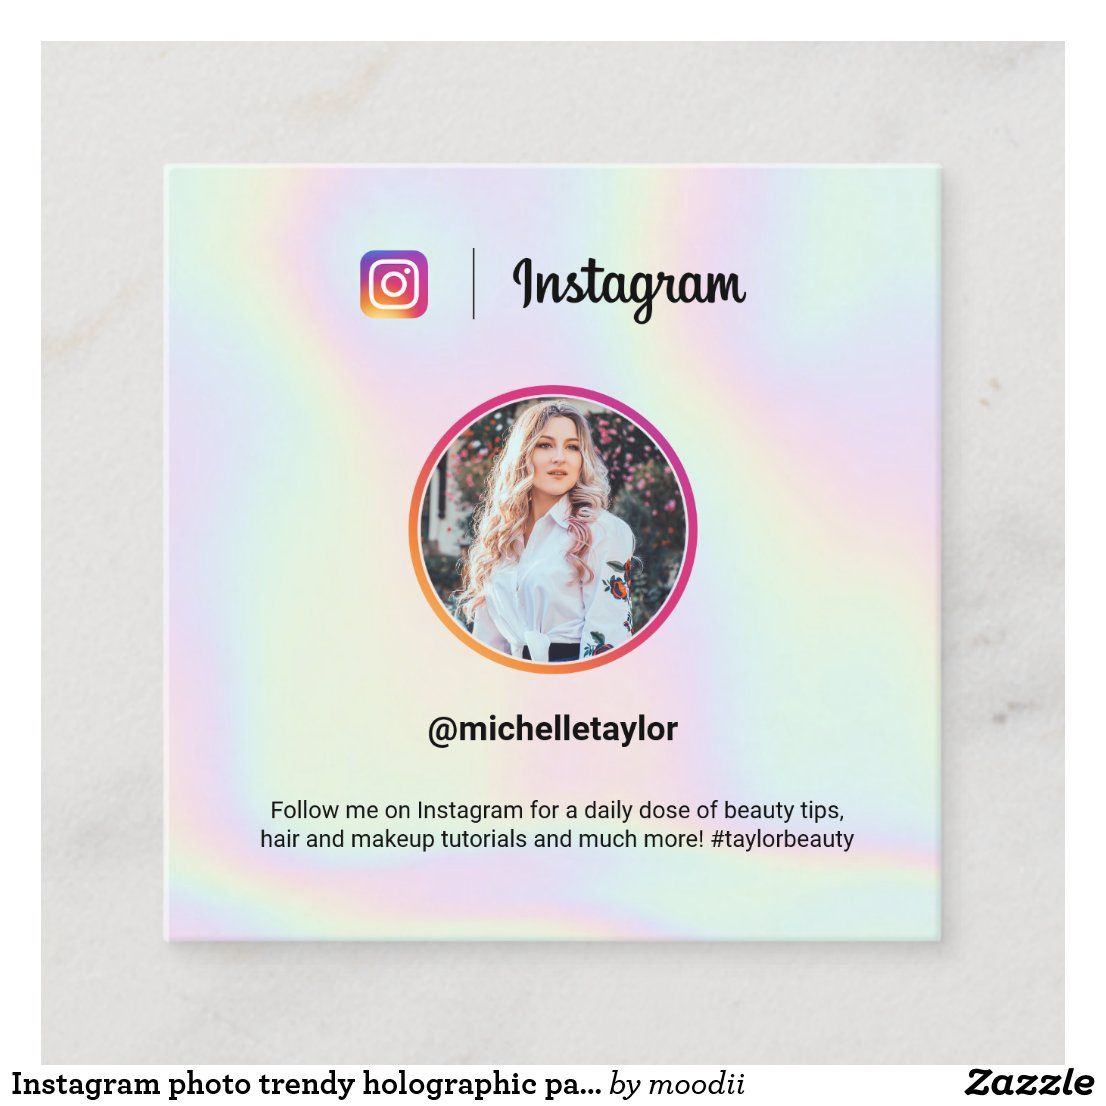 Instagram Photo Trendy Holographic Pastel Rainbow Calling Card Zazzle Com In 2020 Photo Business Cards Calling Cards Social Media Business Cards